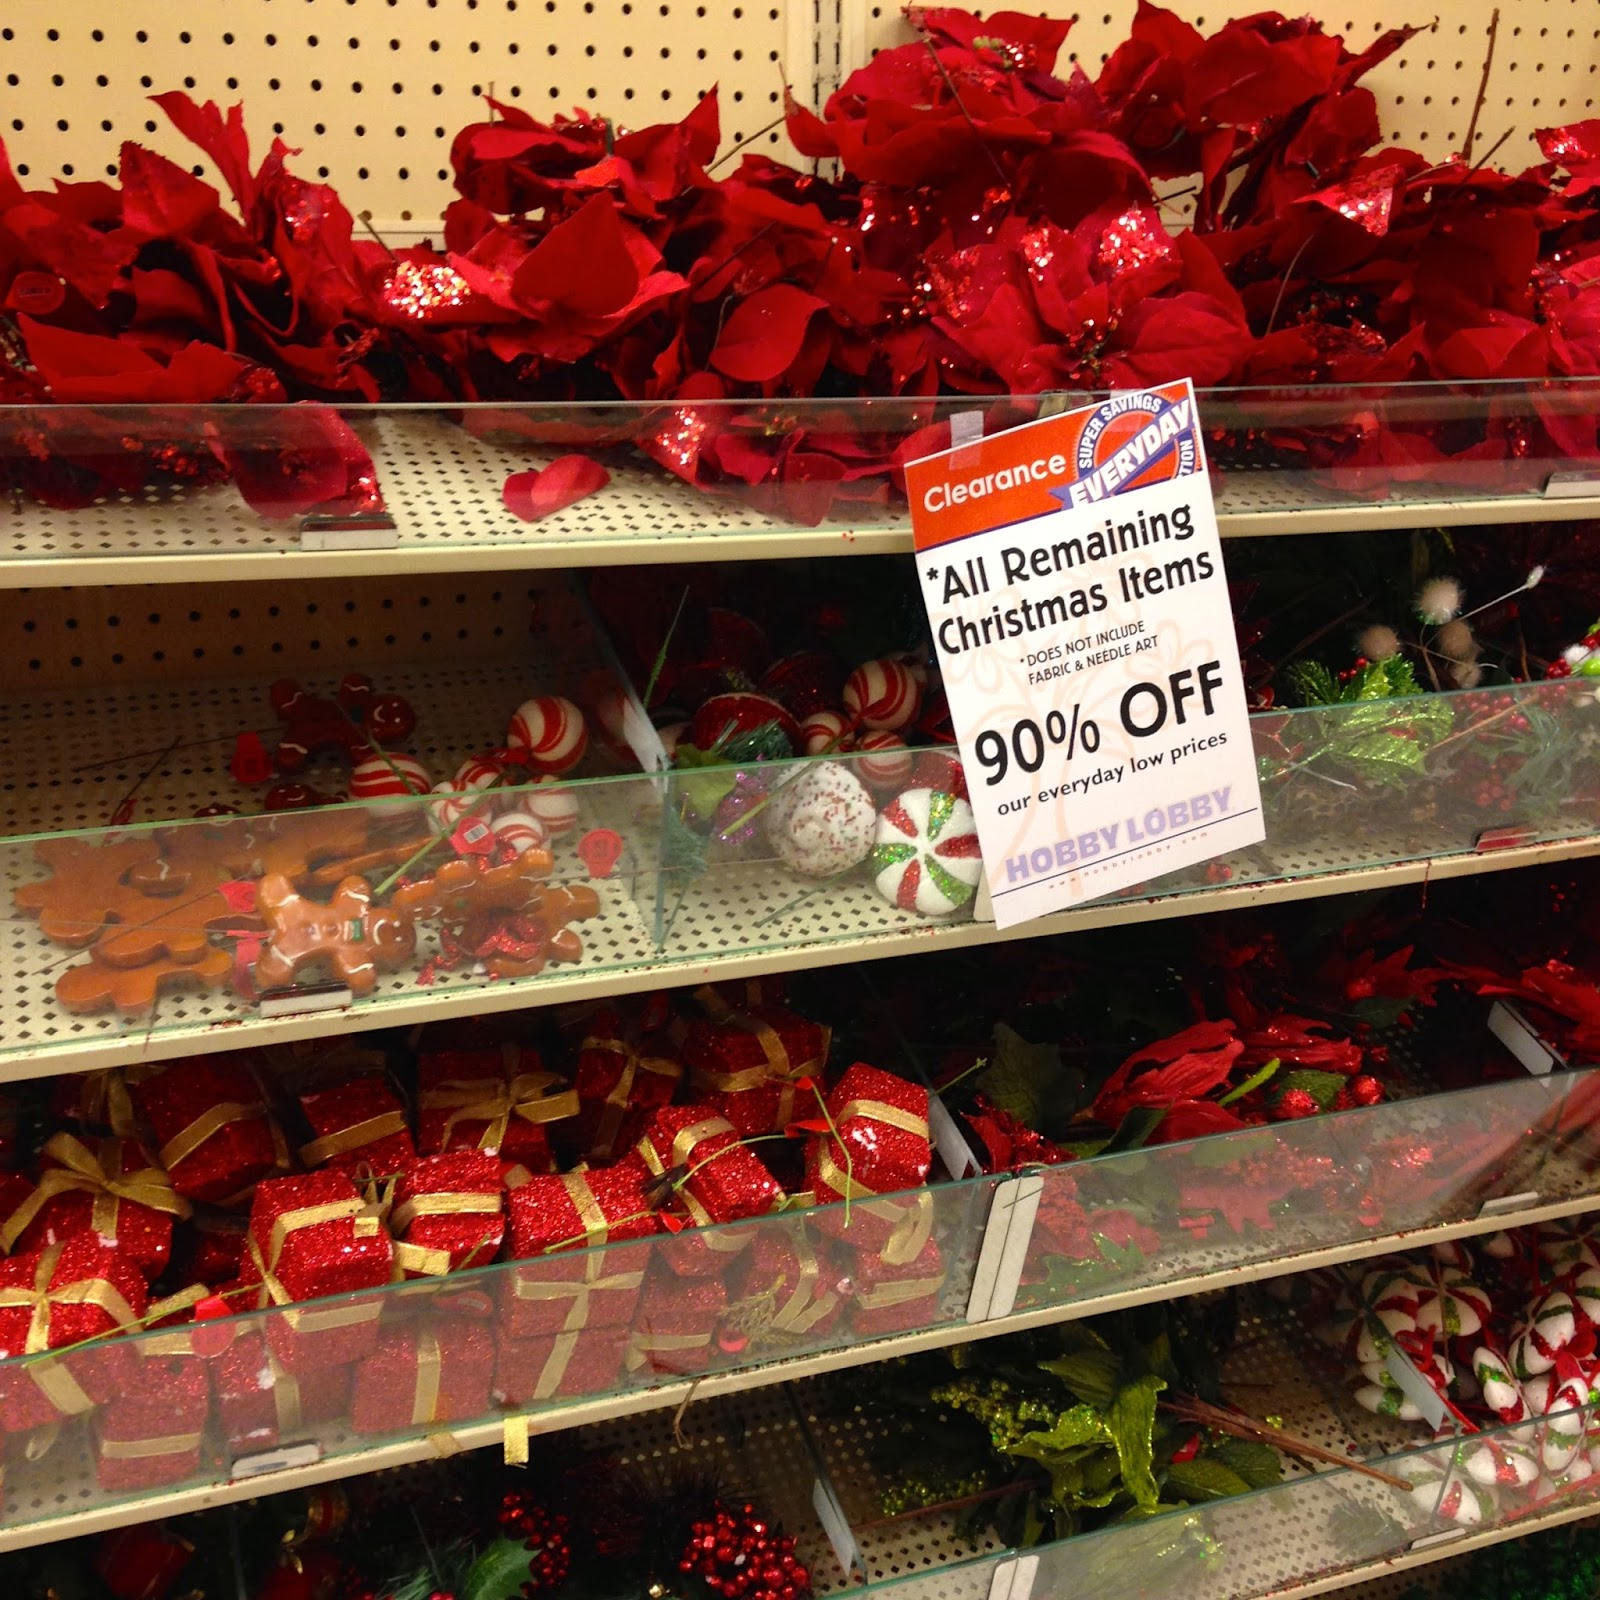 hobby lobby just dropped to 90 off all their christmas items here are some pics of the lincoln ne store